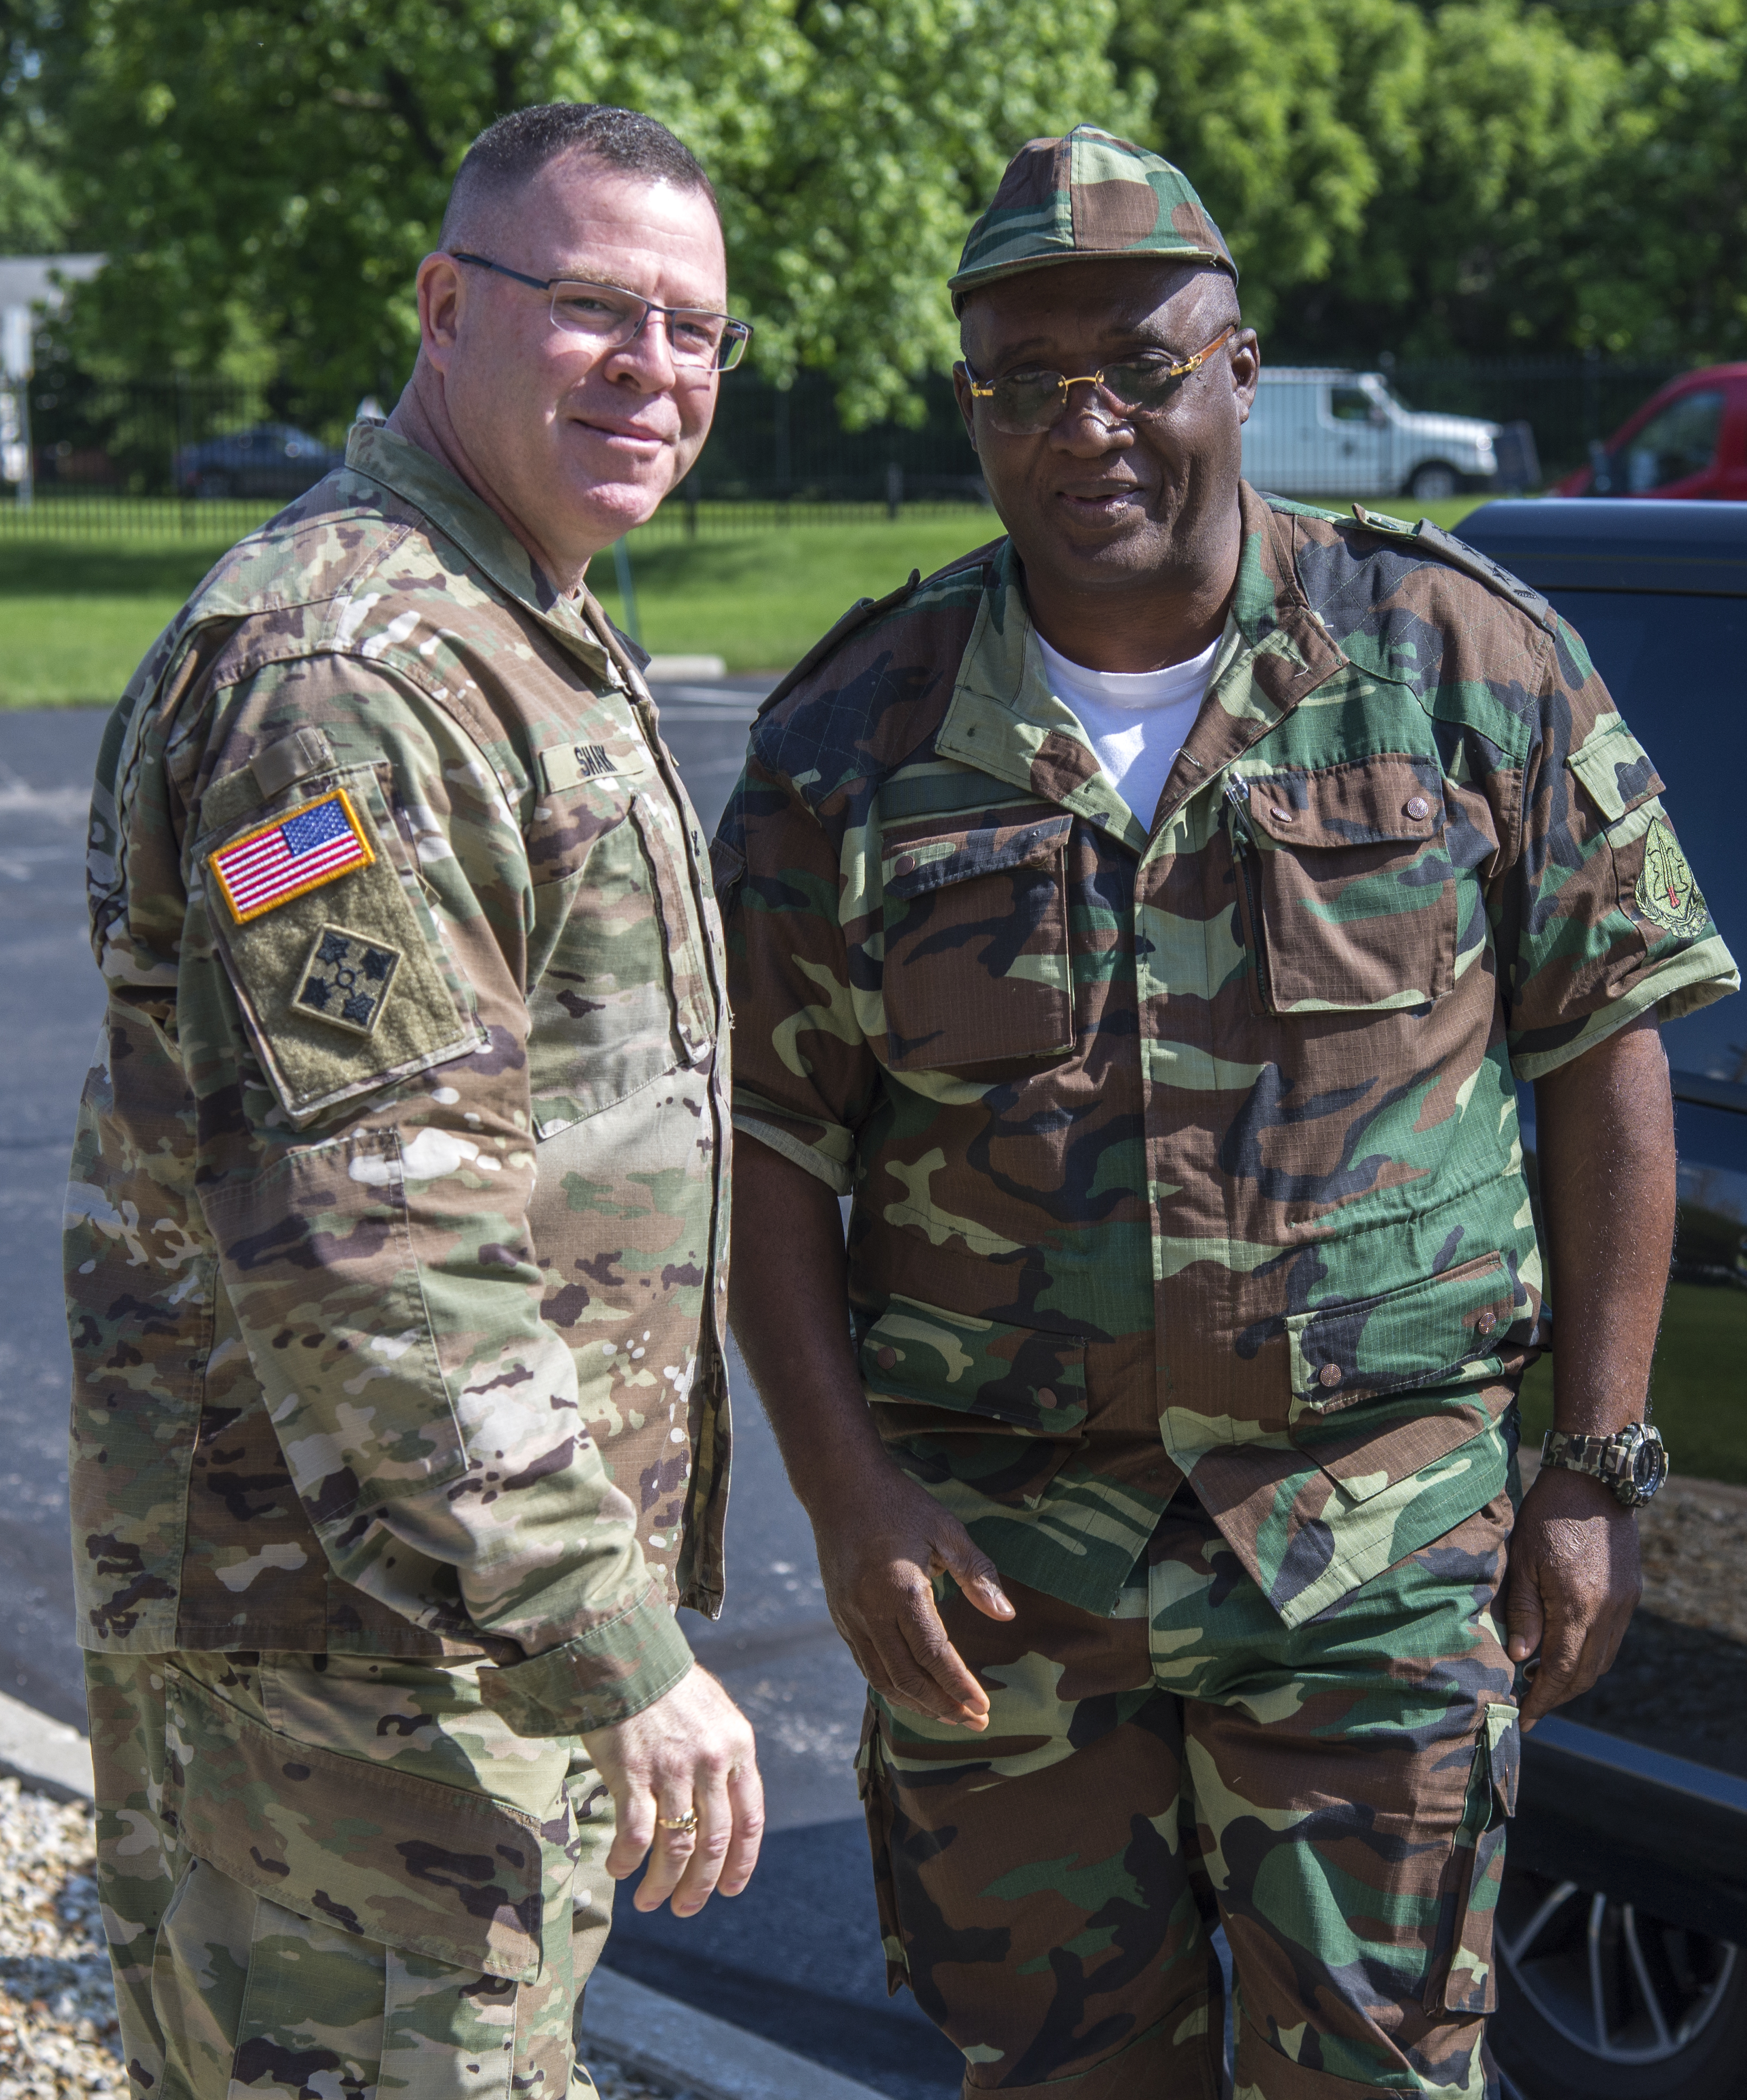 Col. Daniel Shank (left), Ohio assistant adjutant general for Army, greets Gen. Jaques Raul, deputy land forces commander of the Angolan Armed Forces, as his delegation arrives at the Maj. Gen. Robert S. Beightler Armory in Columbus, Ohio, June 4, 2019. The State Partnership Program hosted the delegation at the request of U.S. Army Africa, enabling meetings and discussions between Angolan military and Ohio National Guard leadership.